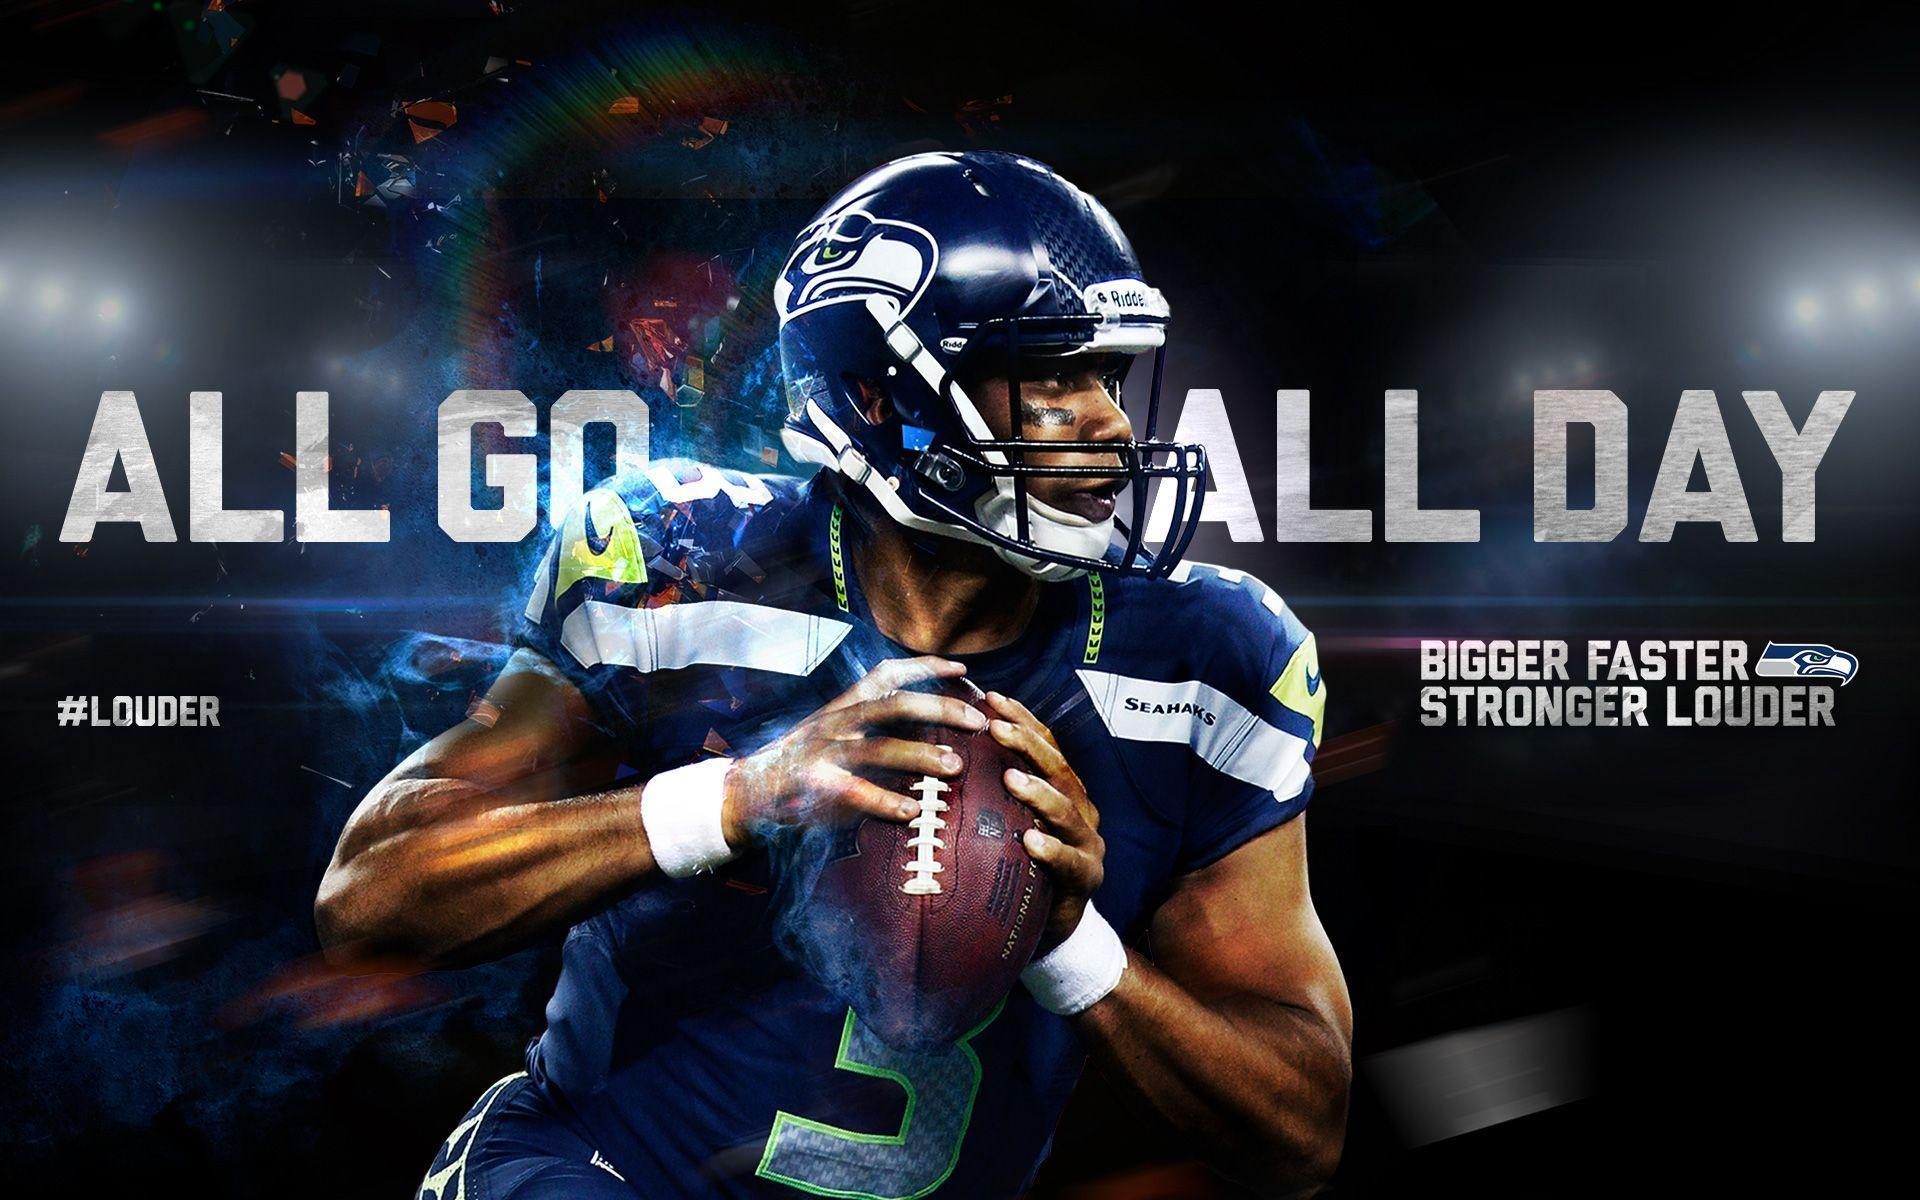 Nfl Football Player Wallpaper Posted By Ryan Mercado